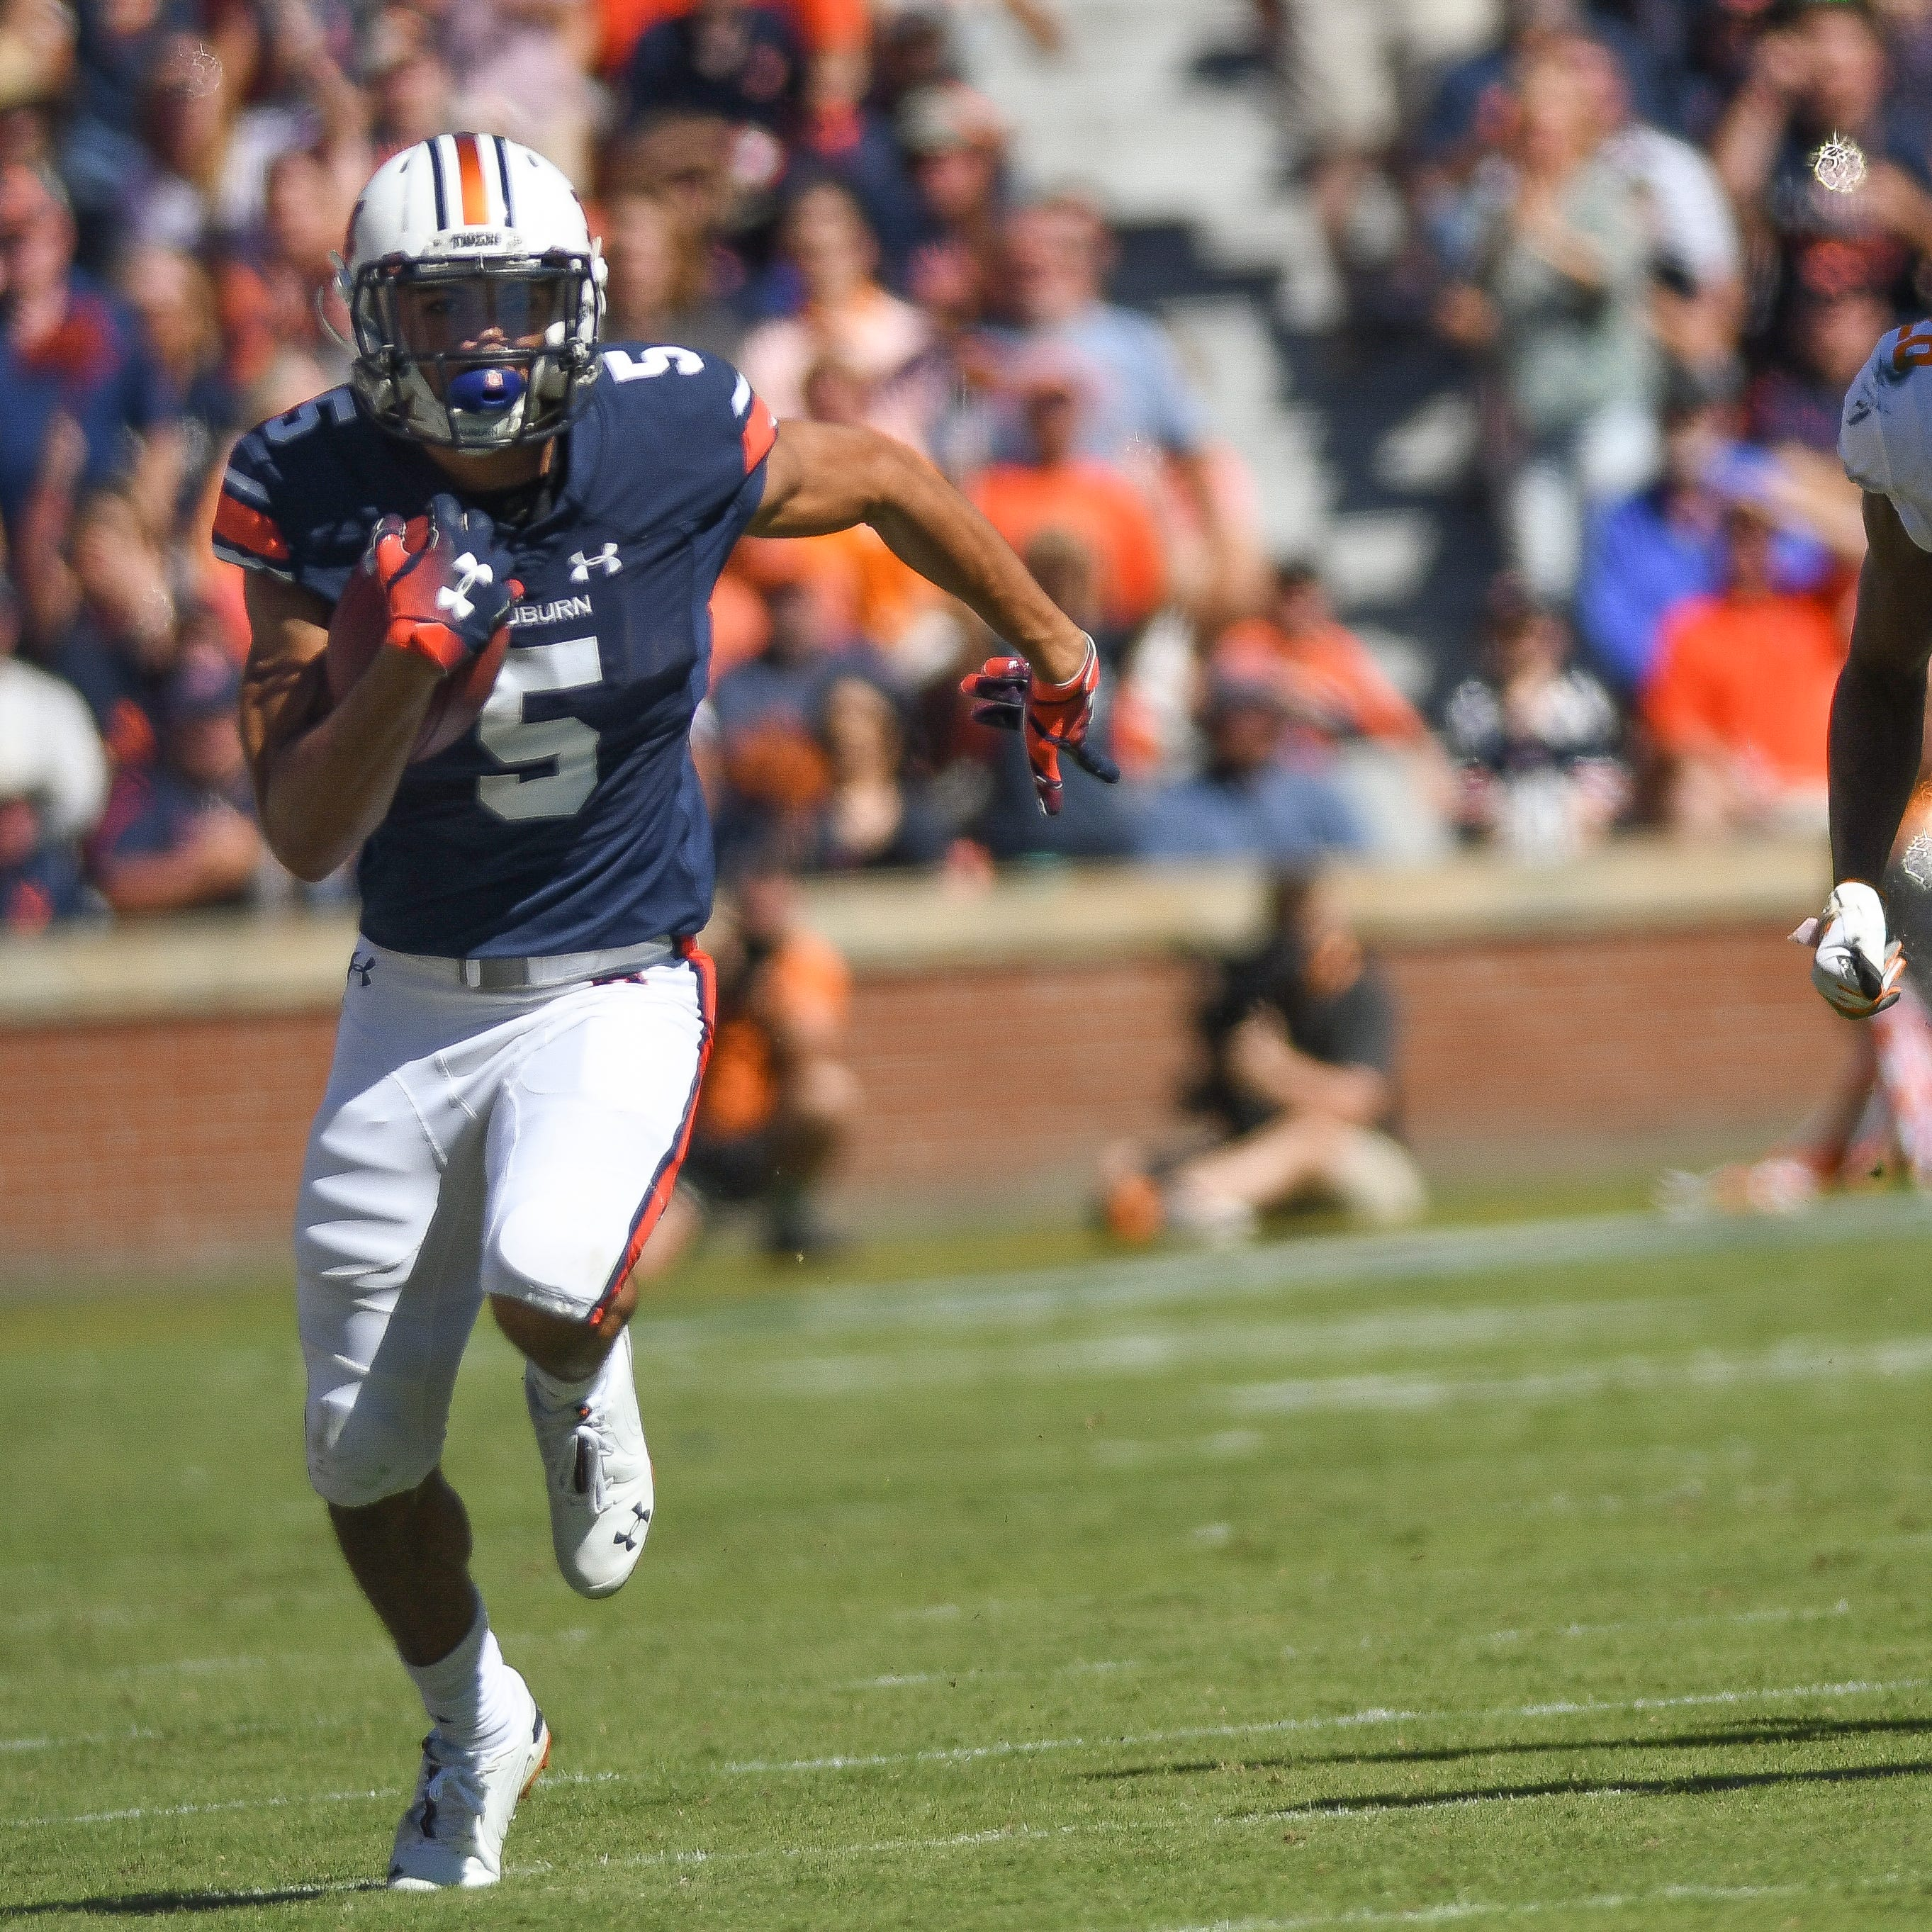 What 'tweaks' does Auburn plan to make on offense? Here are three possibilities: